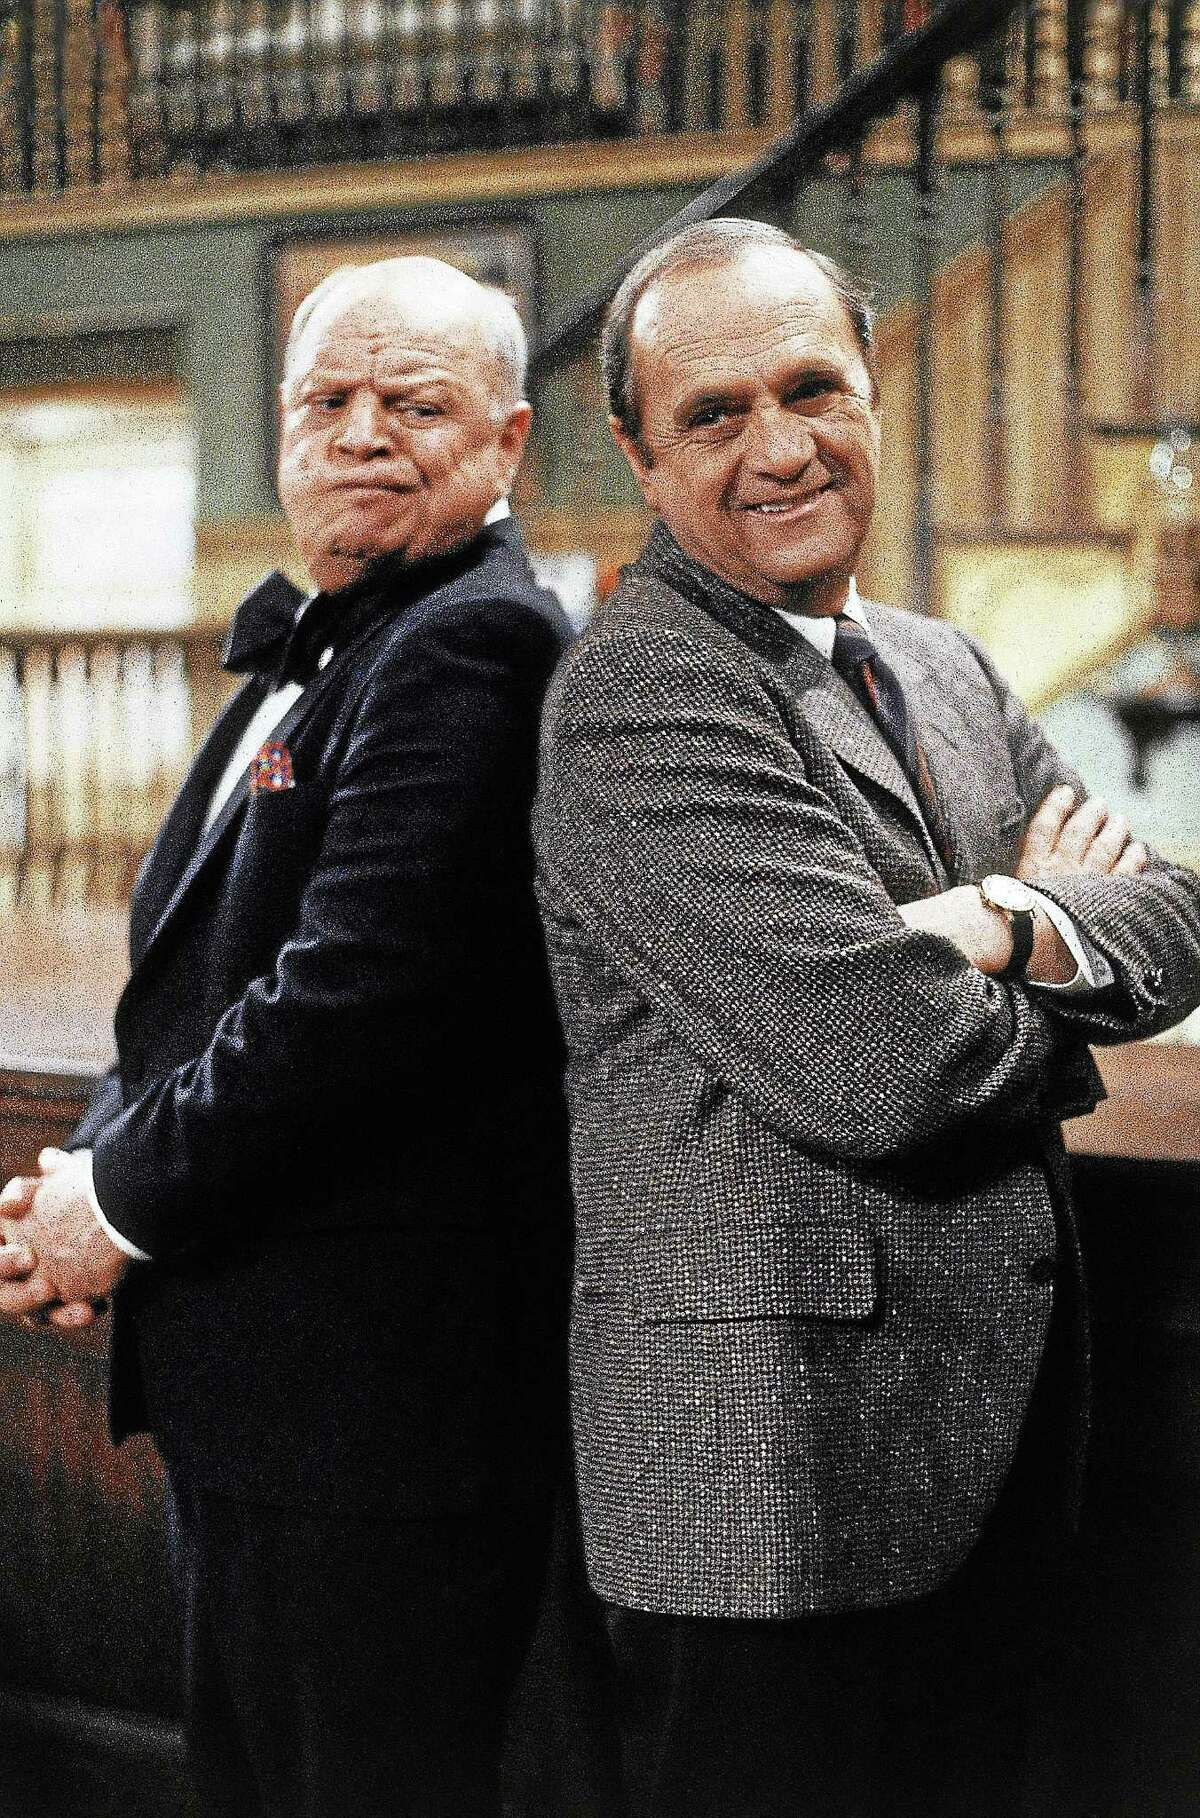 """Bob Newhart and Don Rickles square off during a scene for an episode of """"Newhart"""" in 1989."""